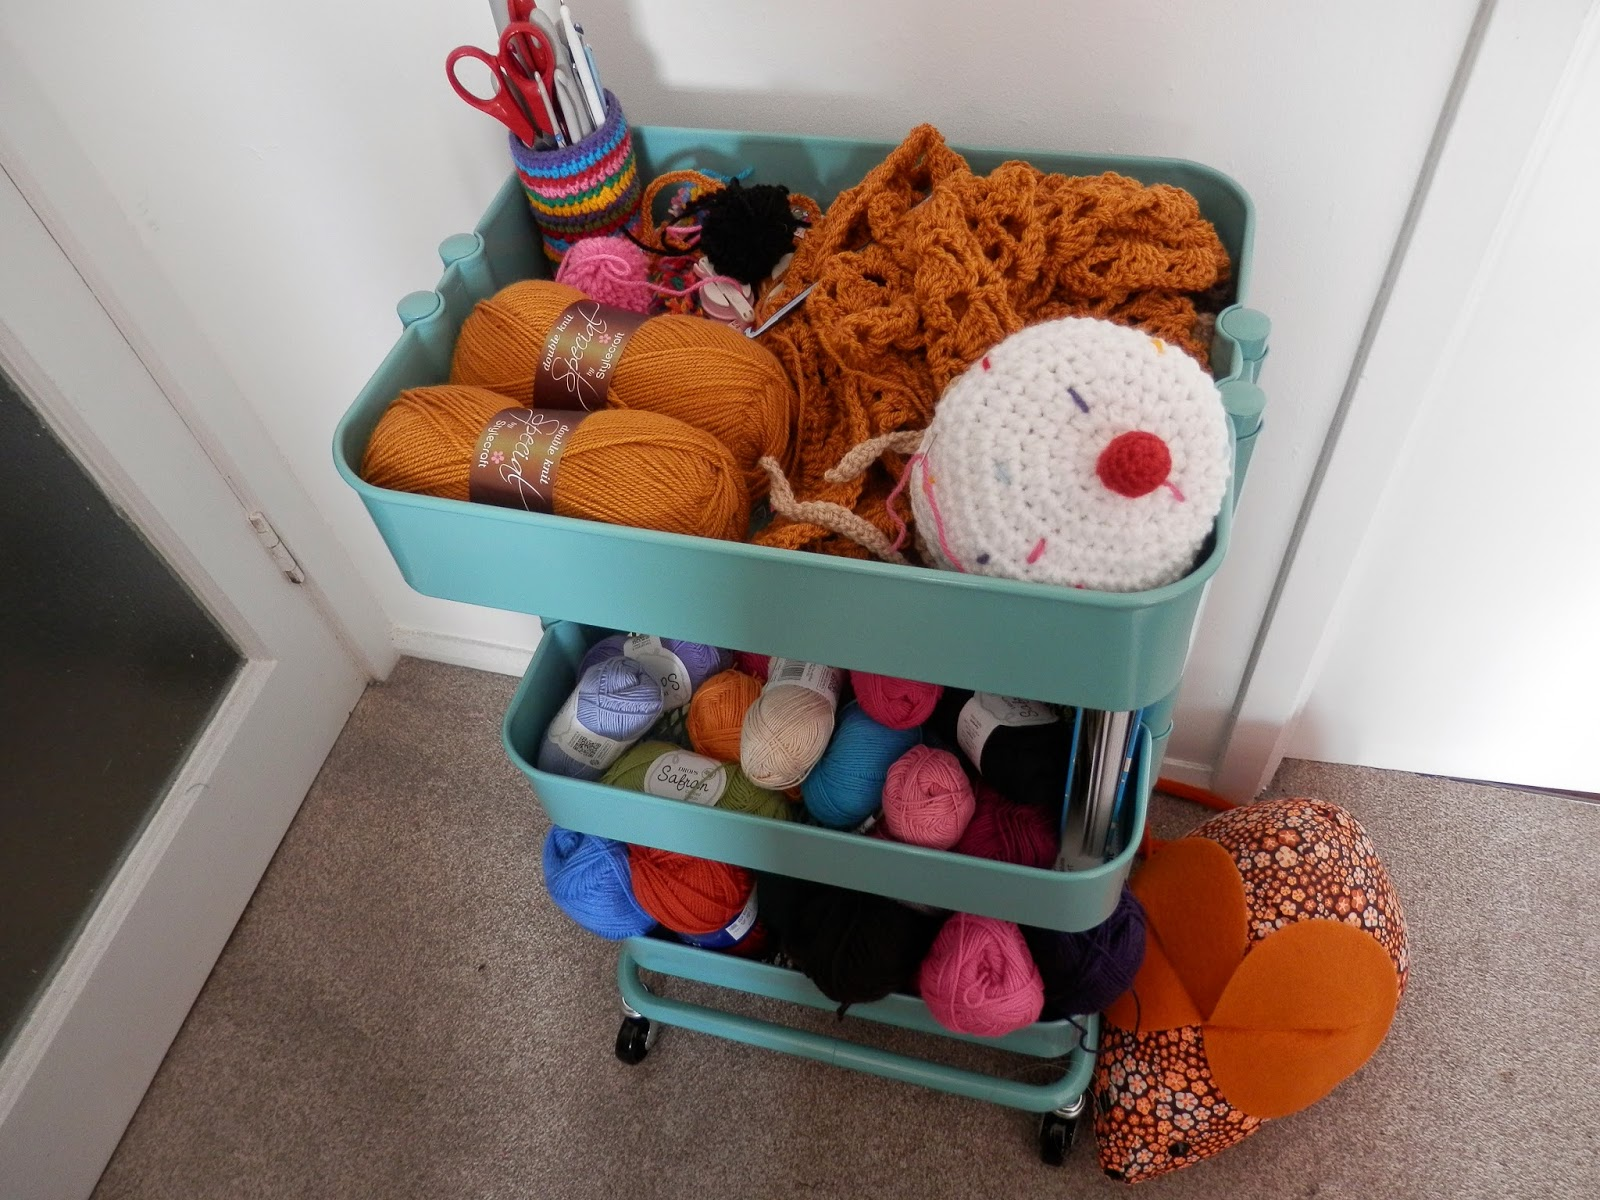 crochet-trolley-ikea-raskog-craft-trolley secondhandsusie.blogspot.co.uk